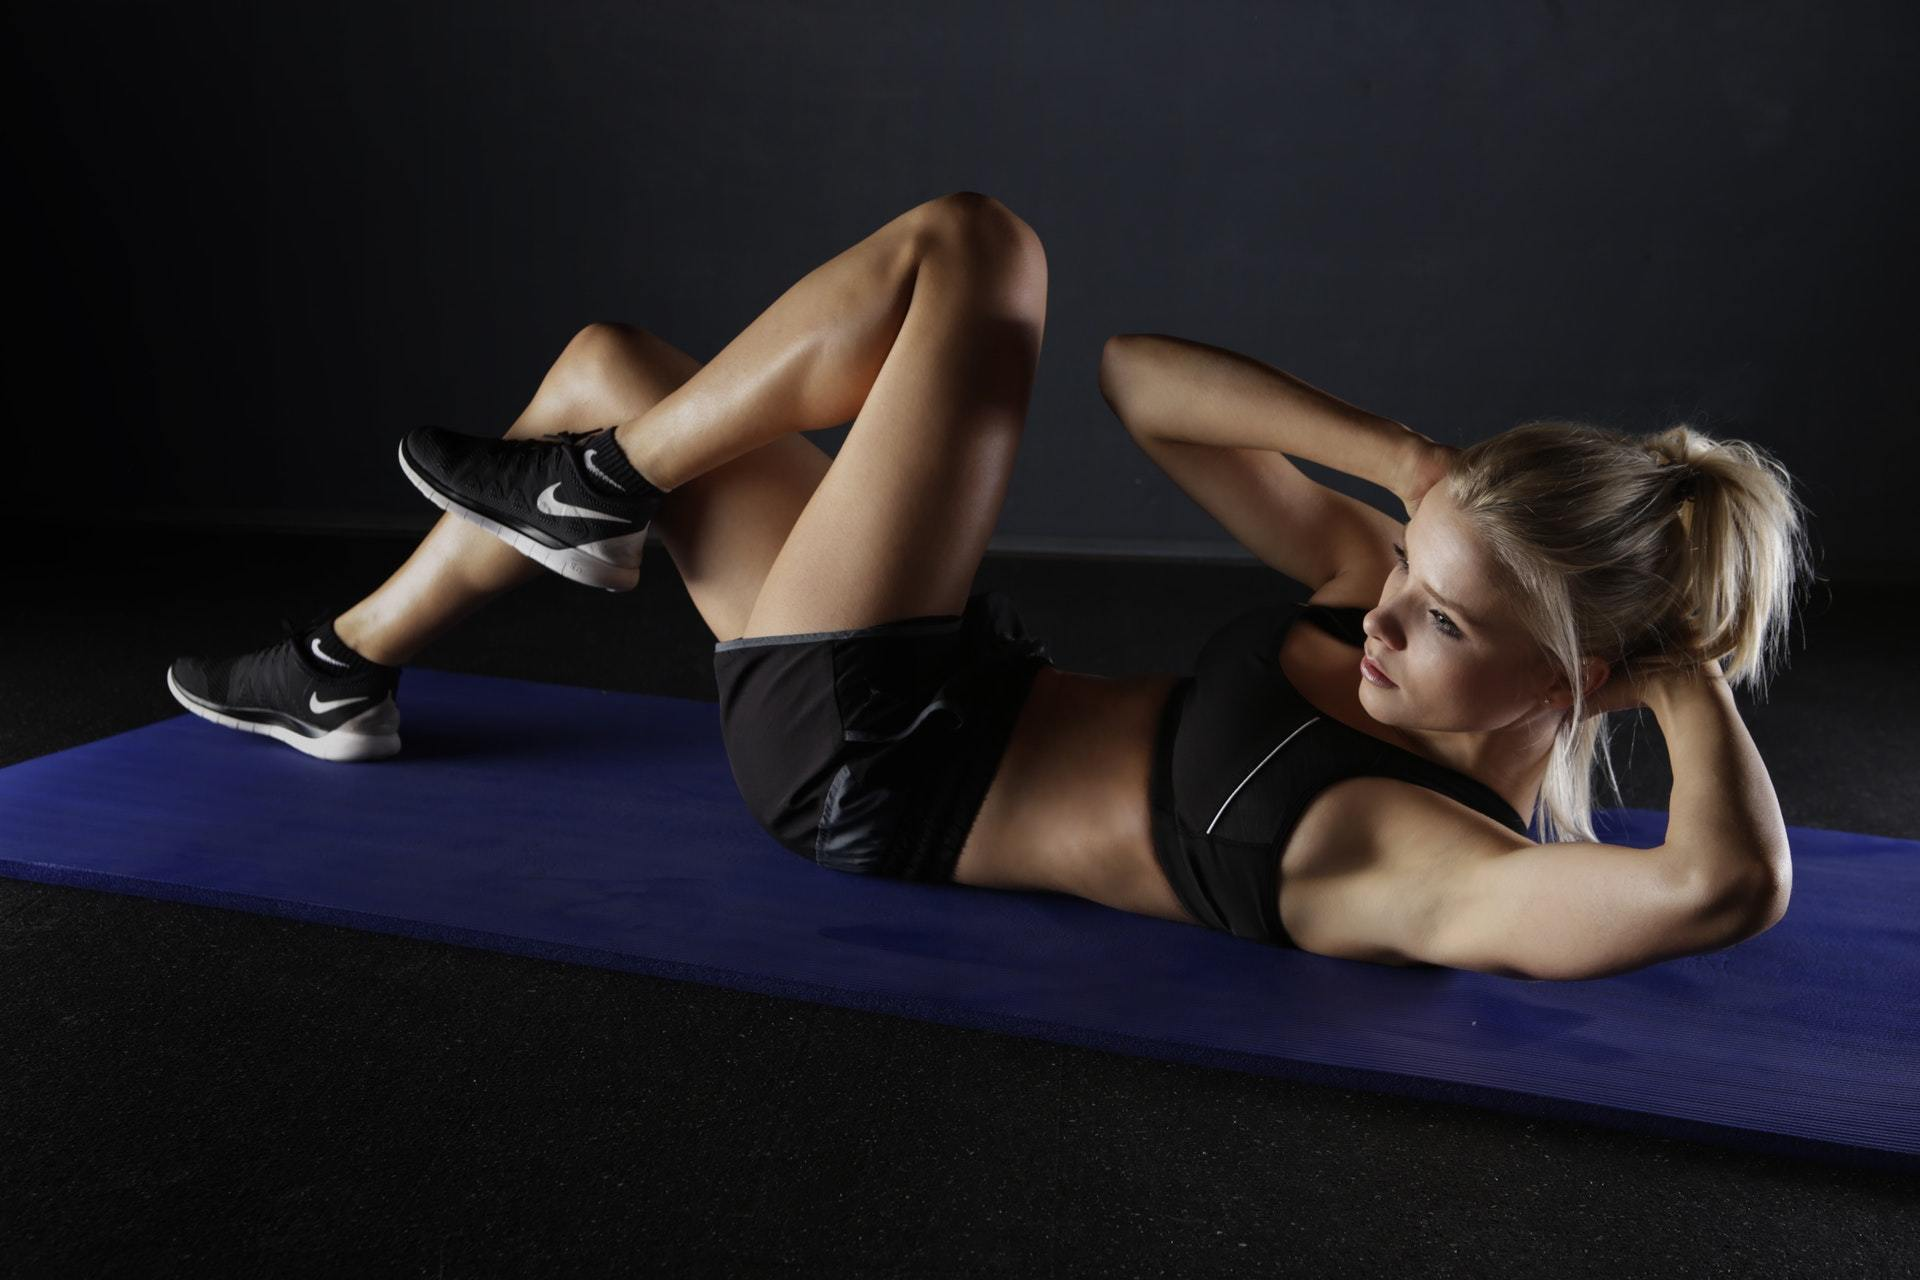 Introduction to HIIT (High-Intensity Interval Training)